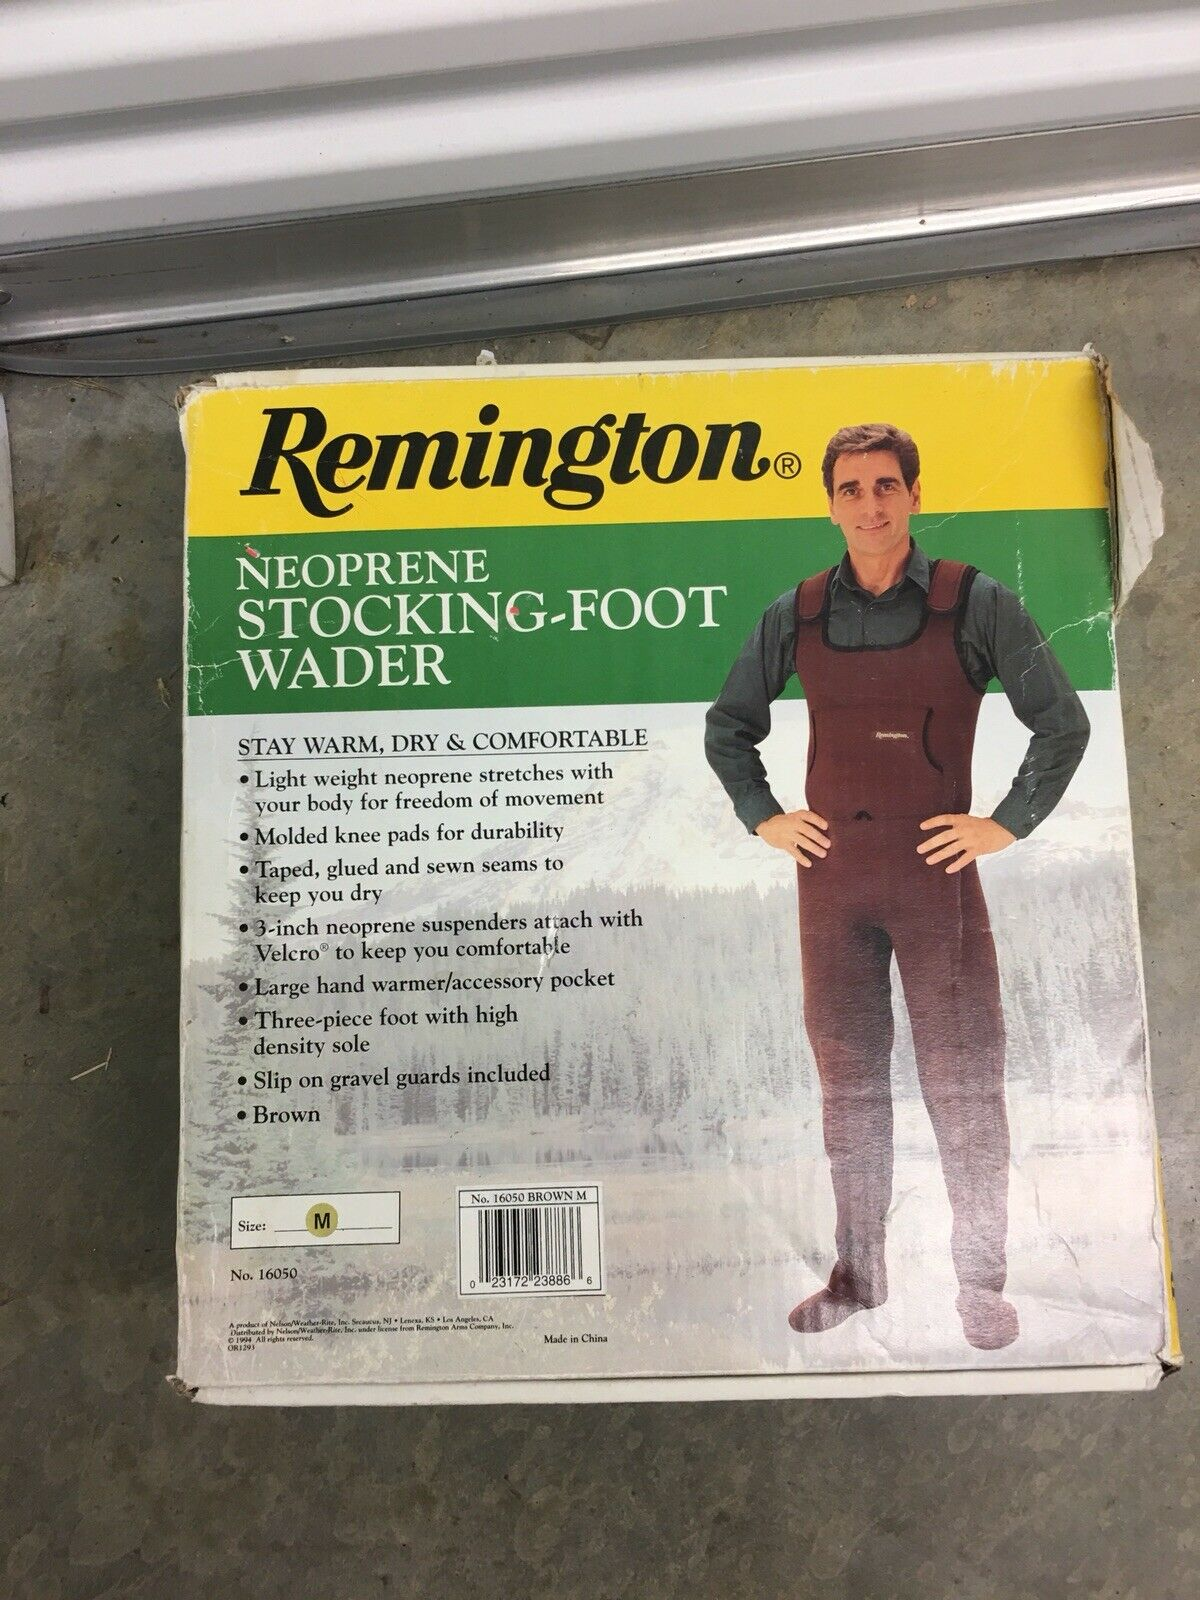 nuovo In scatola Remington Neoprene Hip Chest Waders Dimensione M Medium Foot 8 To 10 Mens